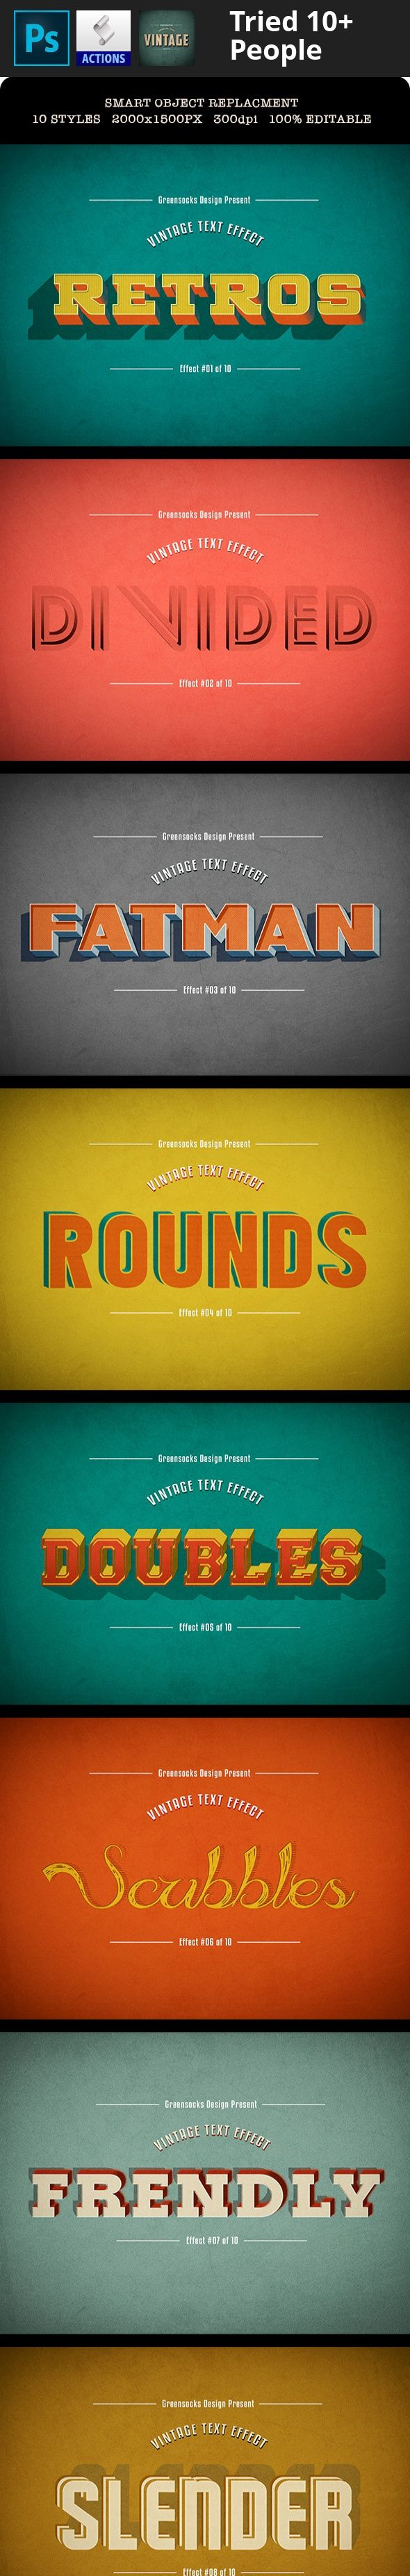 3d, classic, grunge, hipster, indie, insignia, label, logo, mock-up, mockup, oldies, pattern, retro, text, type, typography, vintage Vintage Text Effects Great for posters, flyers, magazine titles and website banners.    10 Text Effects (.psd files) 2000×1500 px / 300dpi / RGB Smart Object Text Replacement 100% Editable Well Organized Layers Free fonts    Fonts:  Kenyan Coffee – http://www.dafont.com/kenyan-coffee.font Big Ten Block – http://www.dafont.com/big-ten-block.font Street Cre...